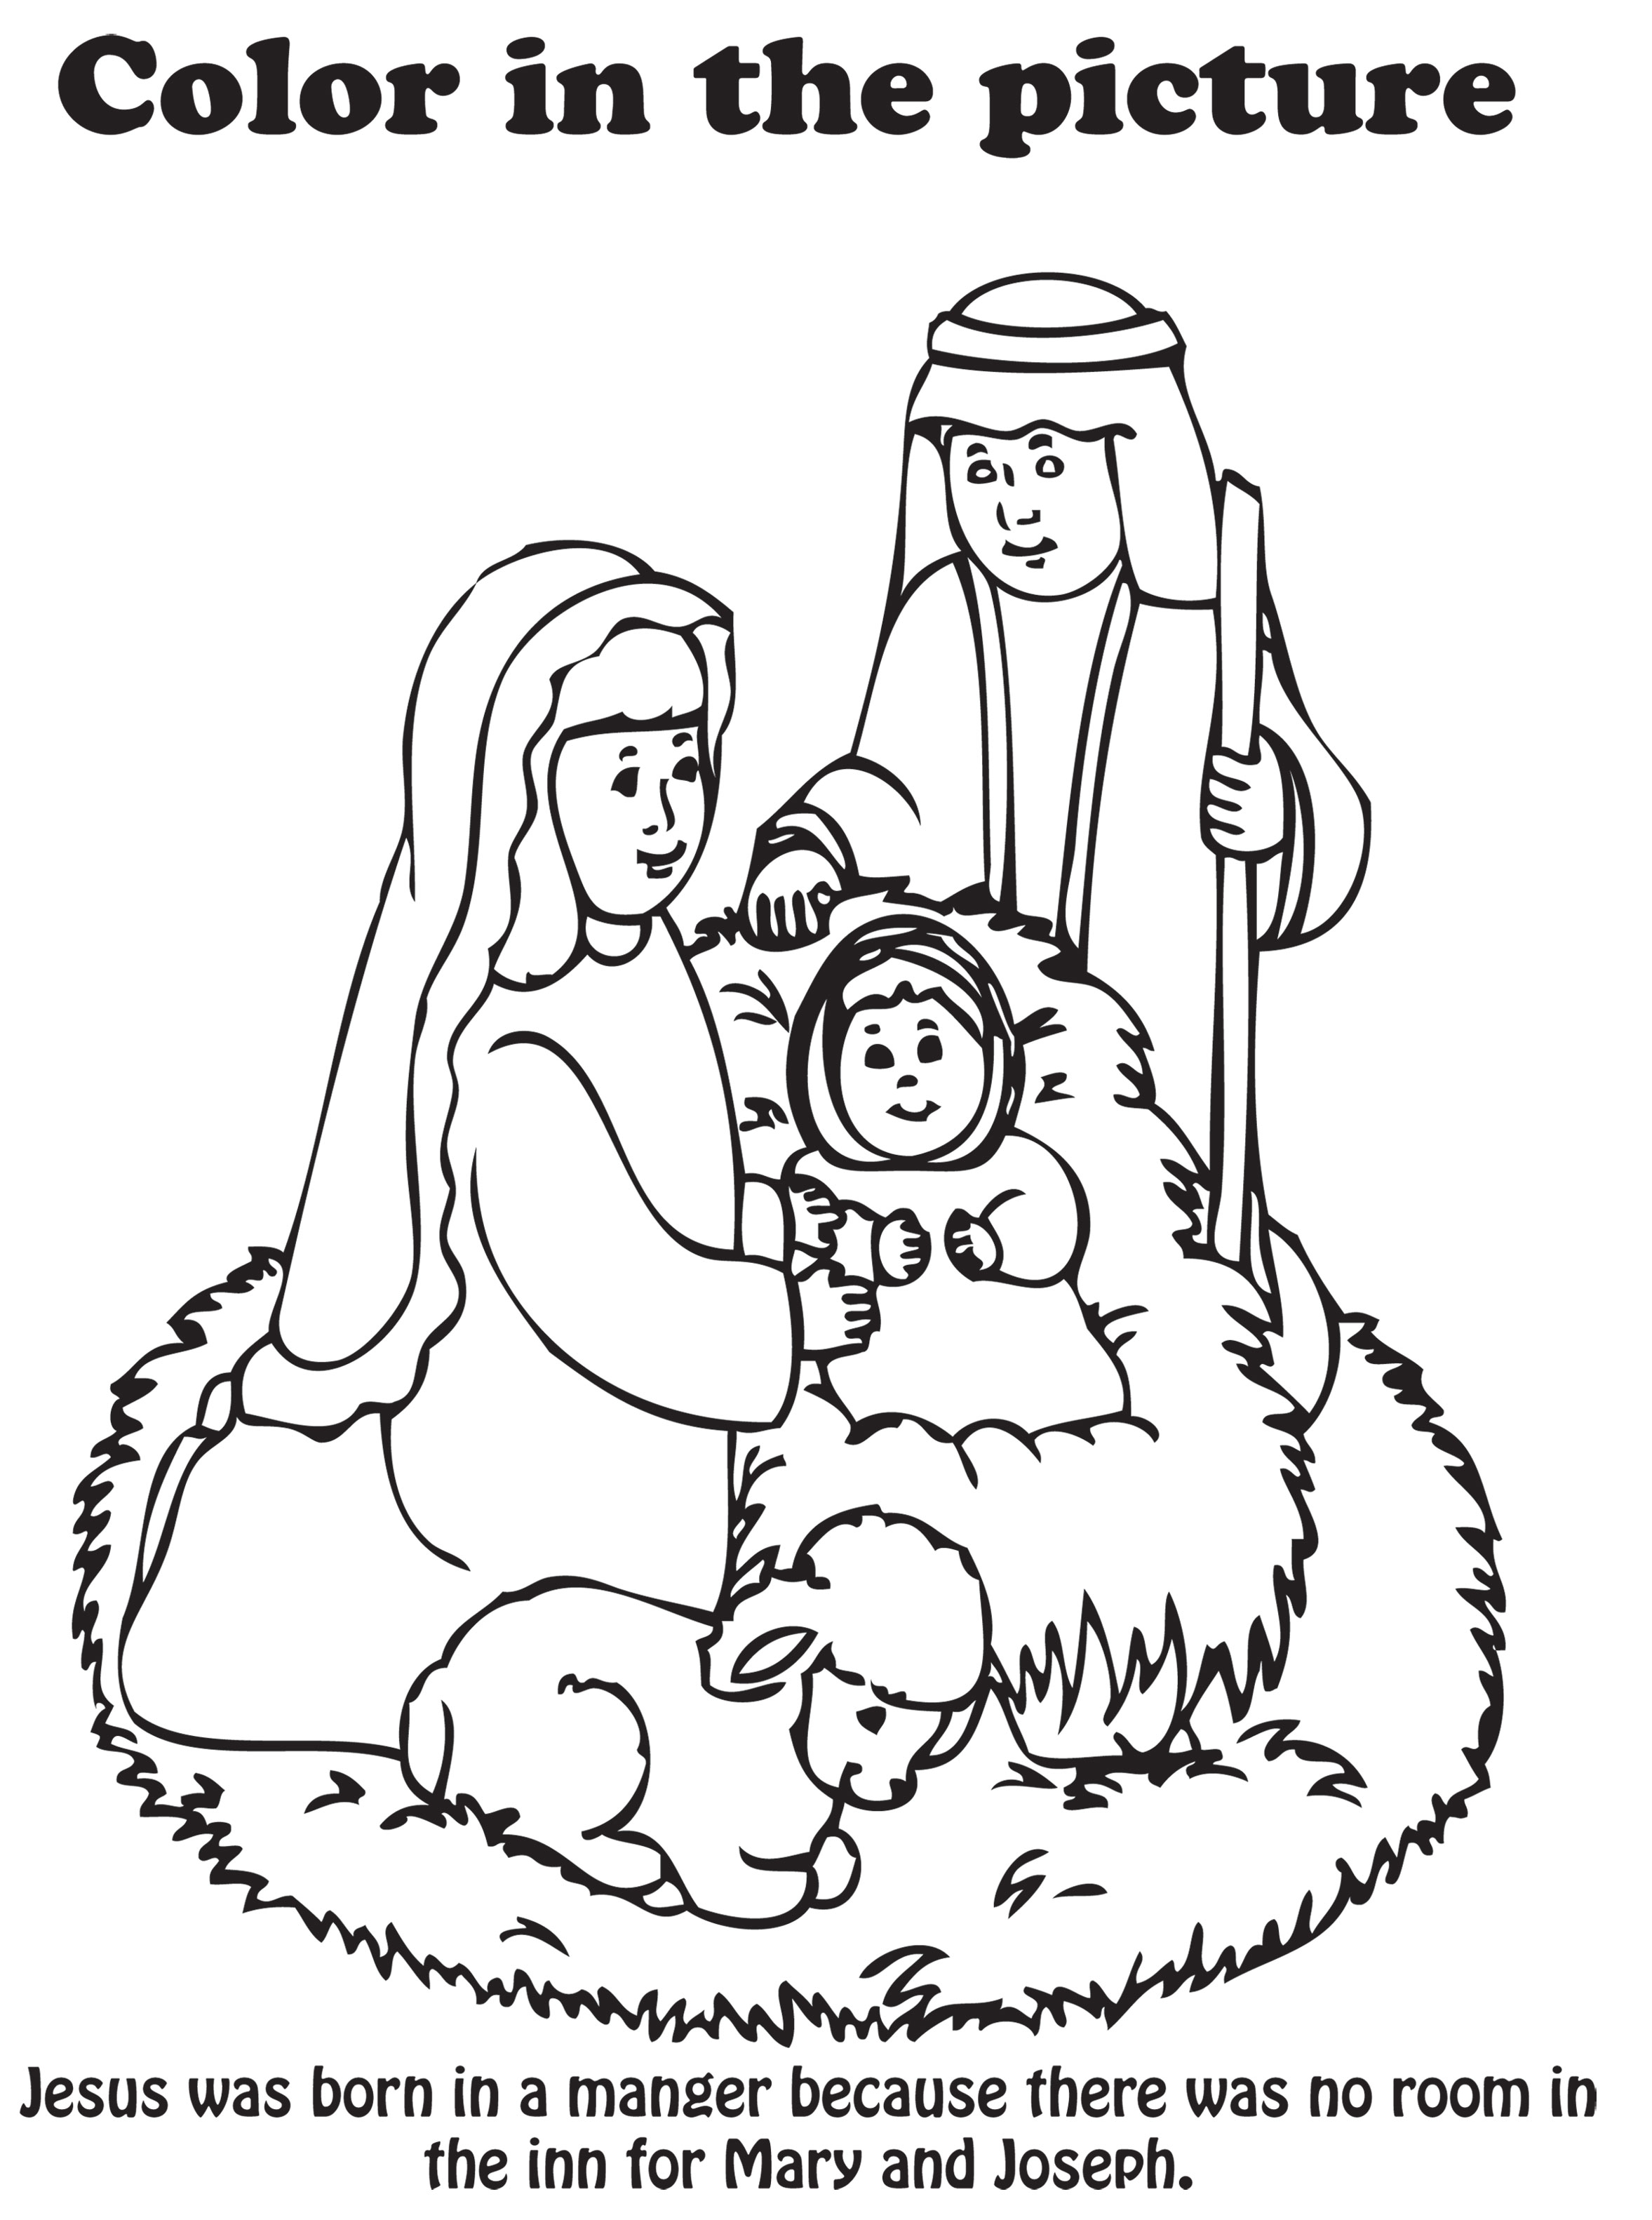 Nativity coloring page printable for Nativity scene coloring pages printable